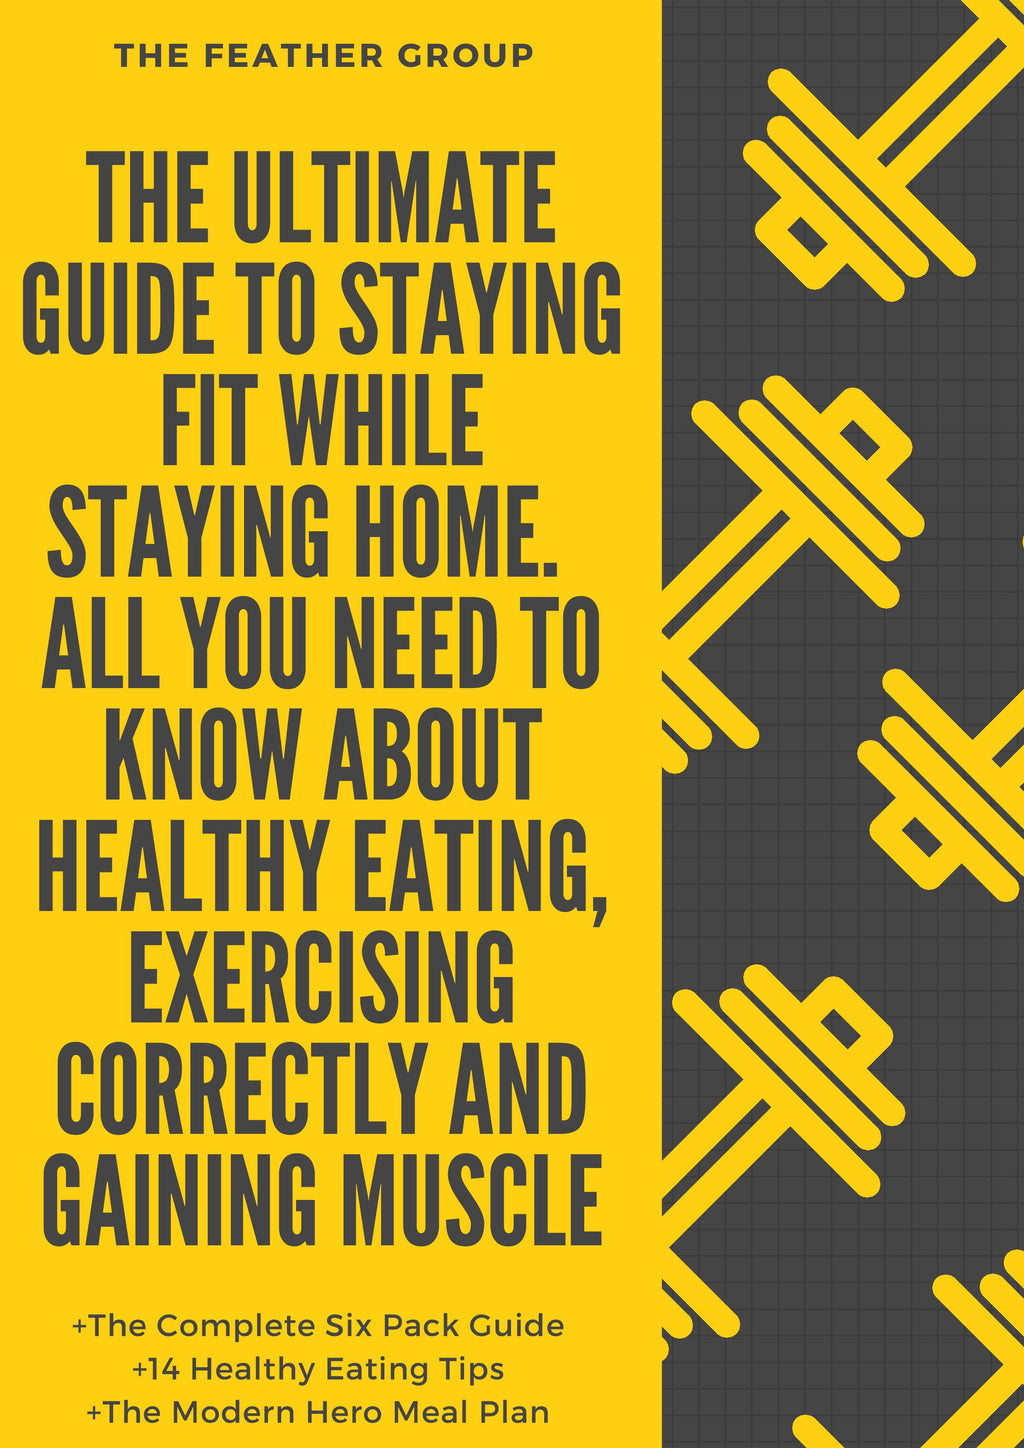 The Ultimate Guide To Staying Fit - Feather Sports&Outdoor